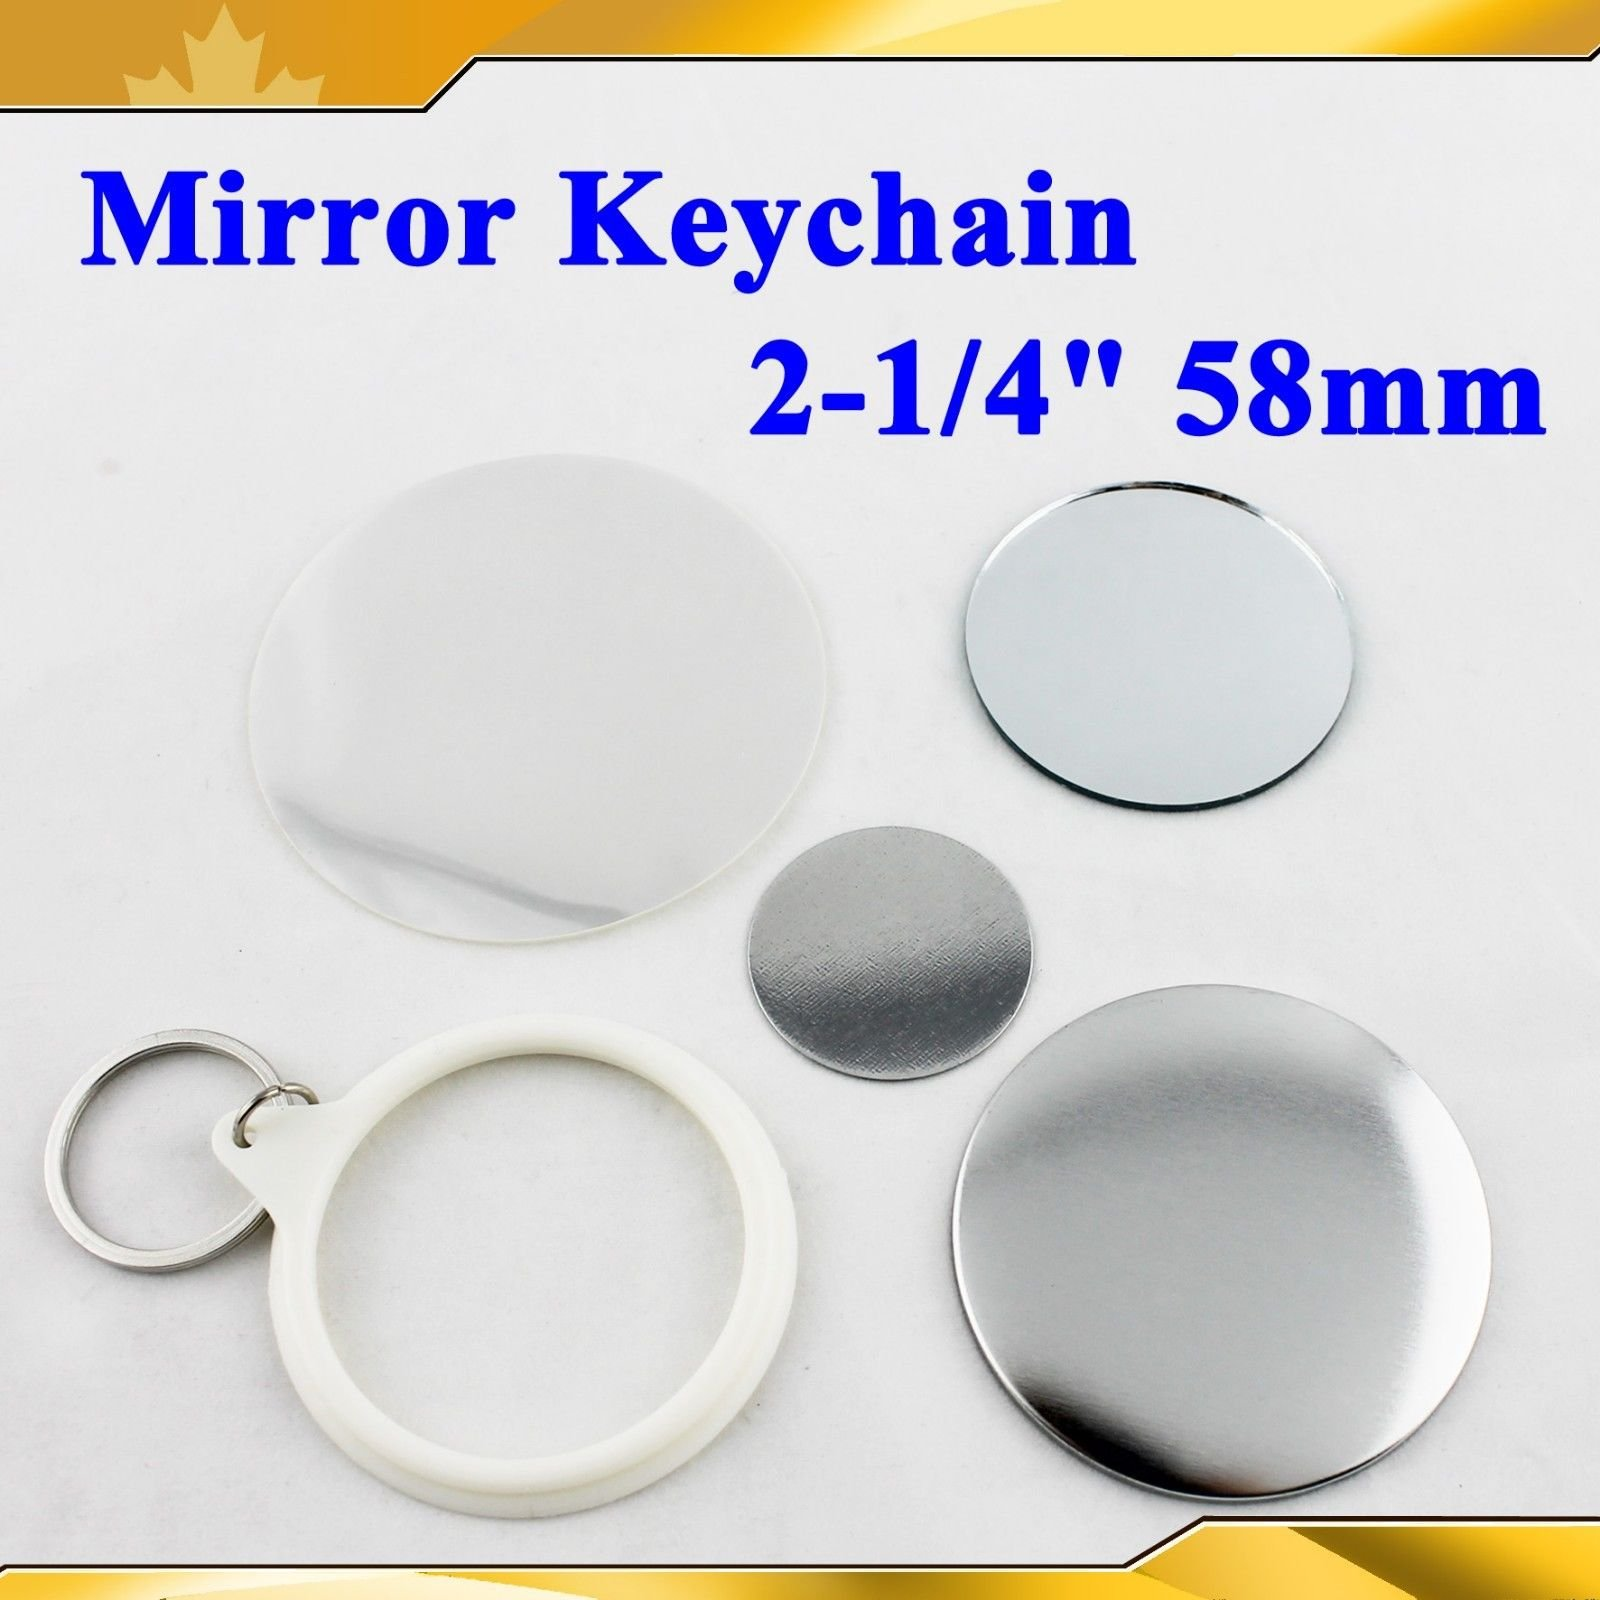 Mirror Keychain 58mm 2-1/4'' Supplies 100sets for Pro Maker Machine Commerciadiy by Button Maker